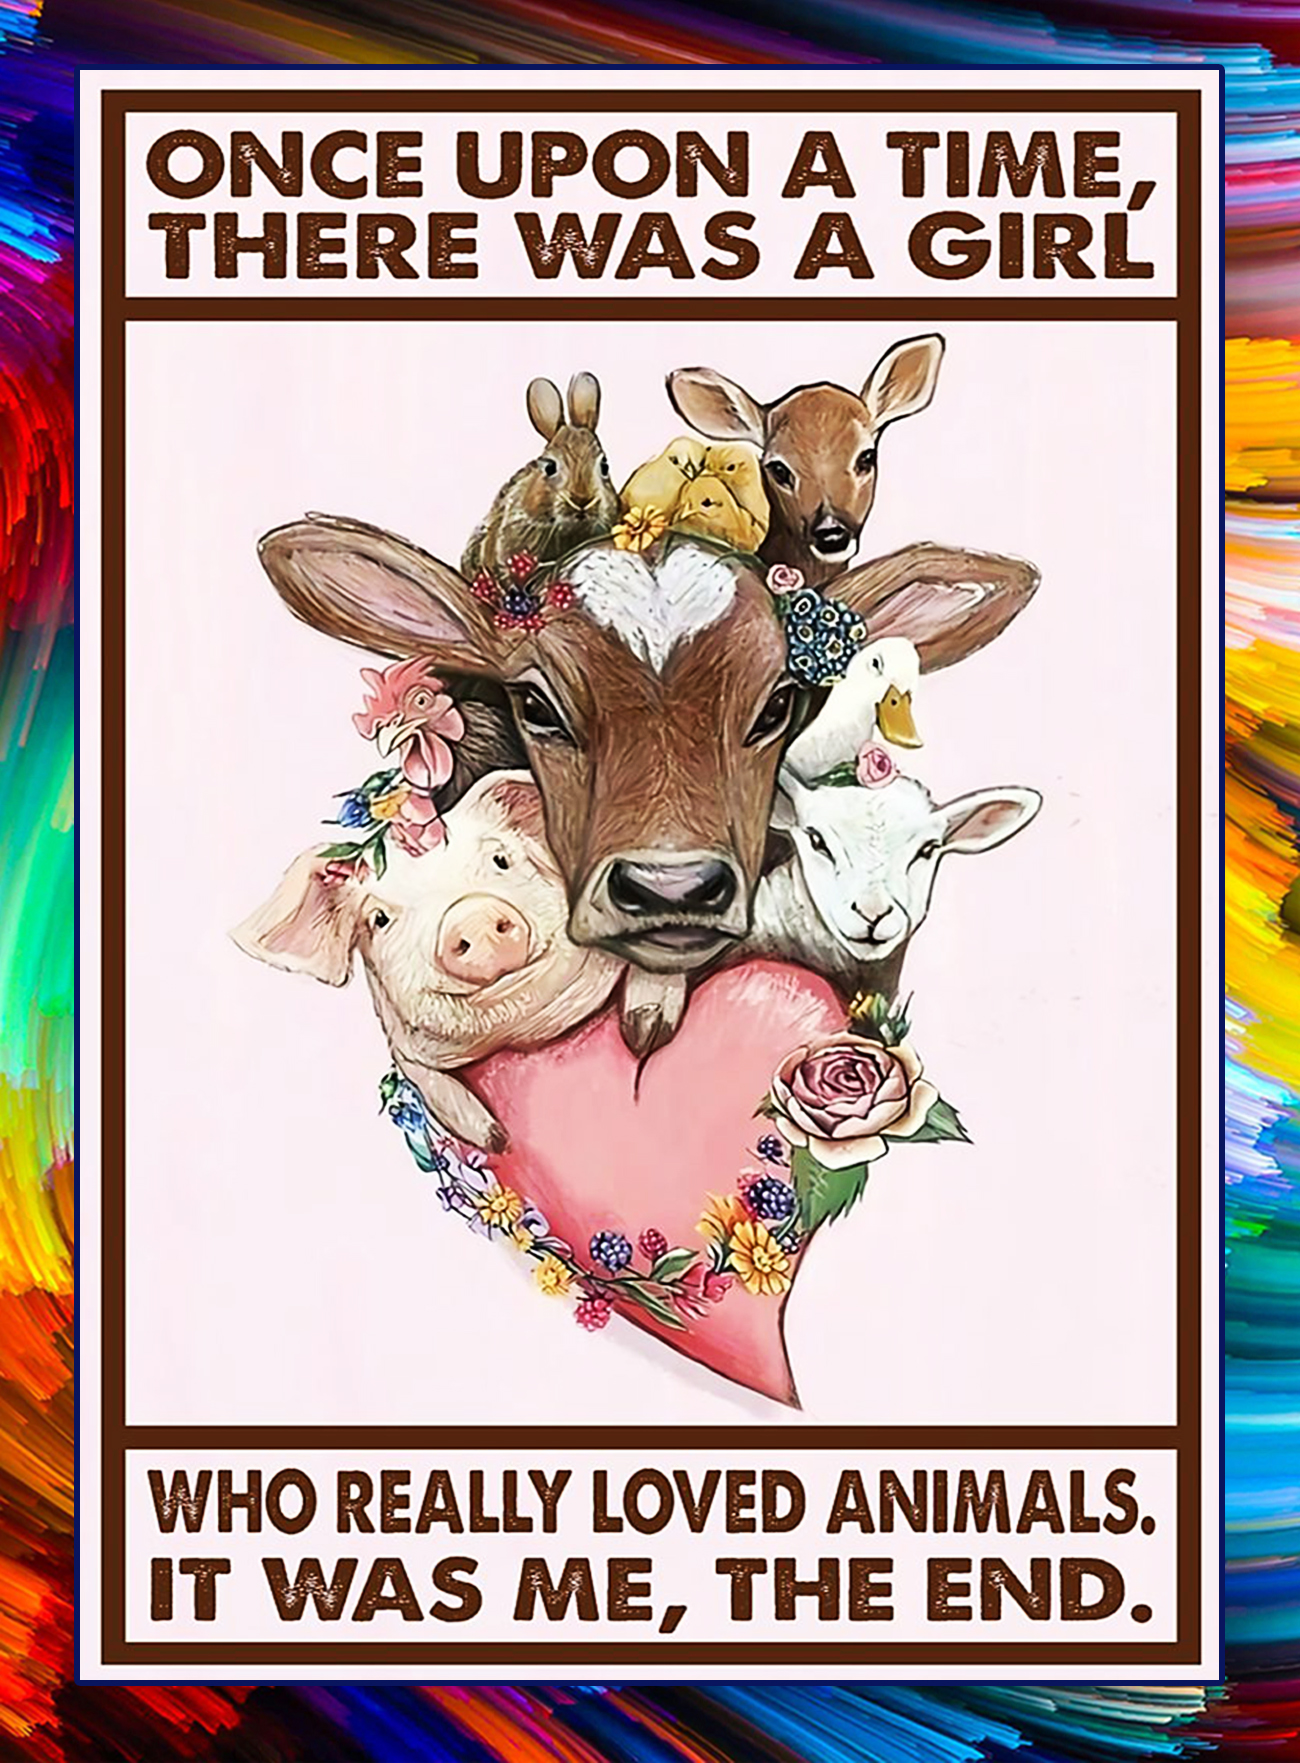 Vegan once upon a time there was a girl who really loved animals poster - A4